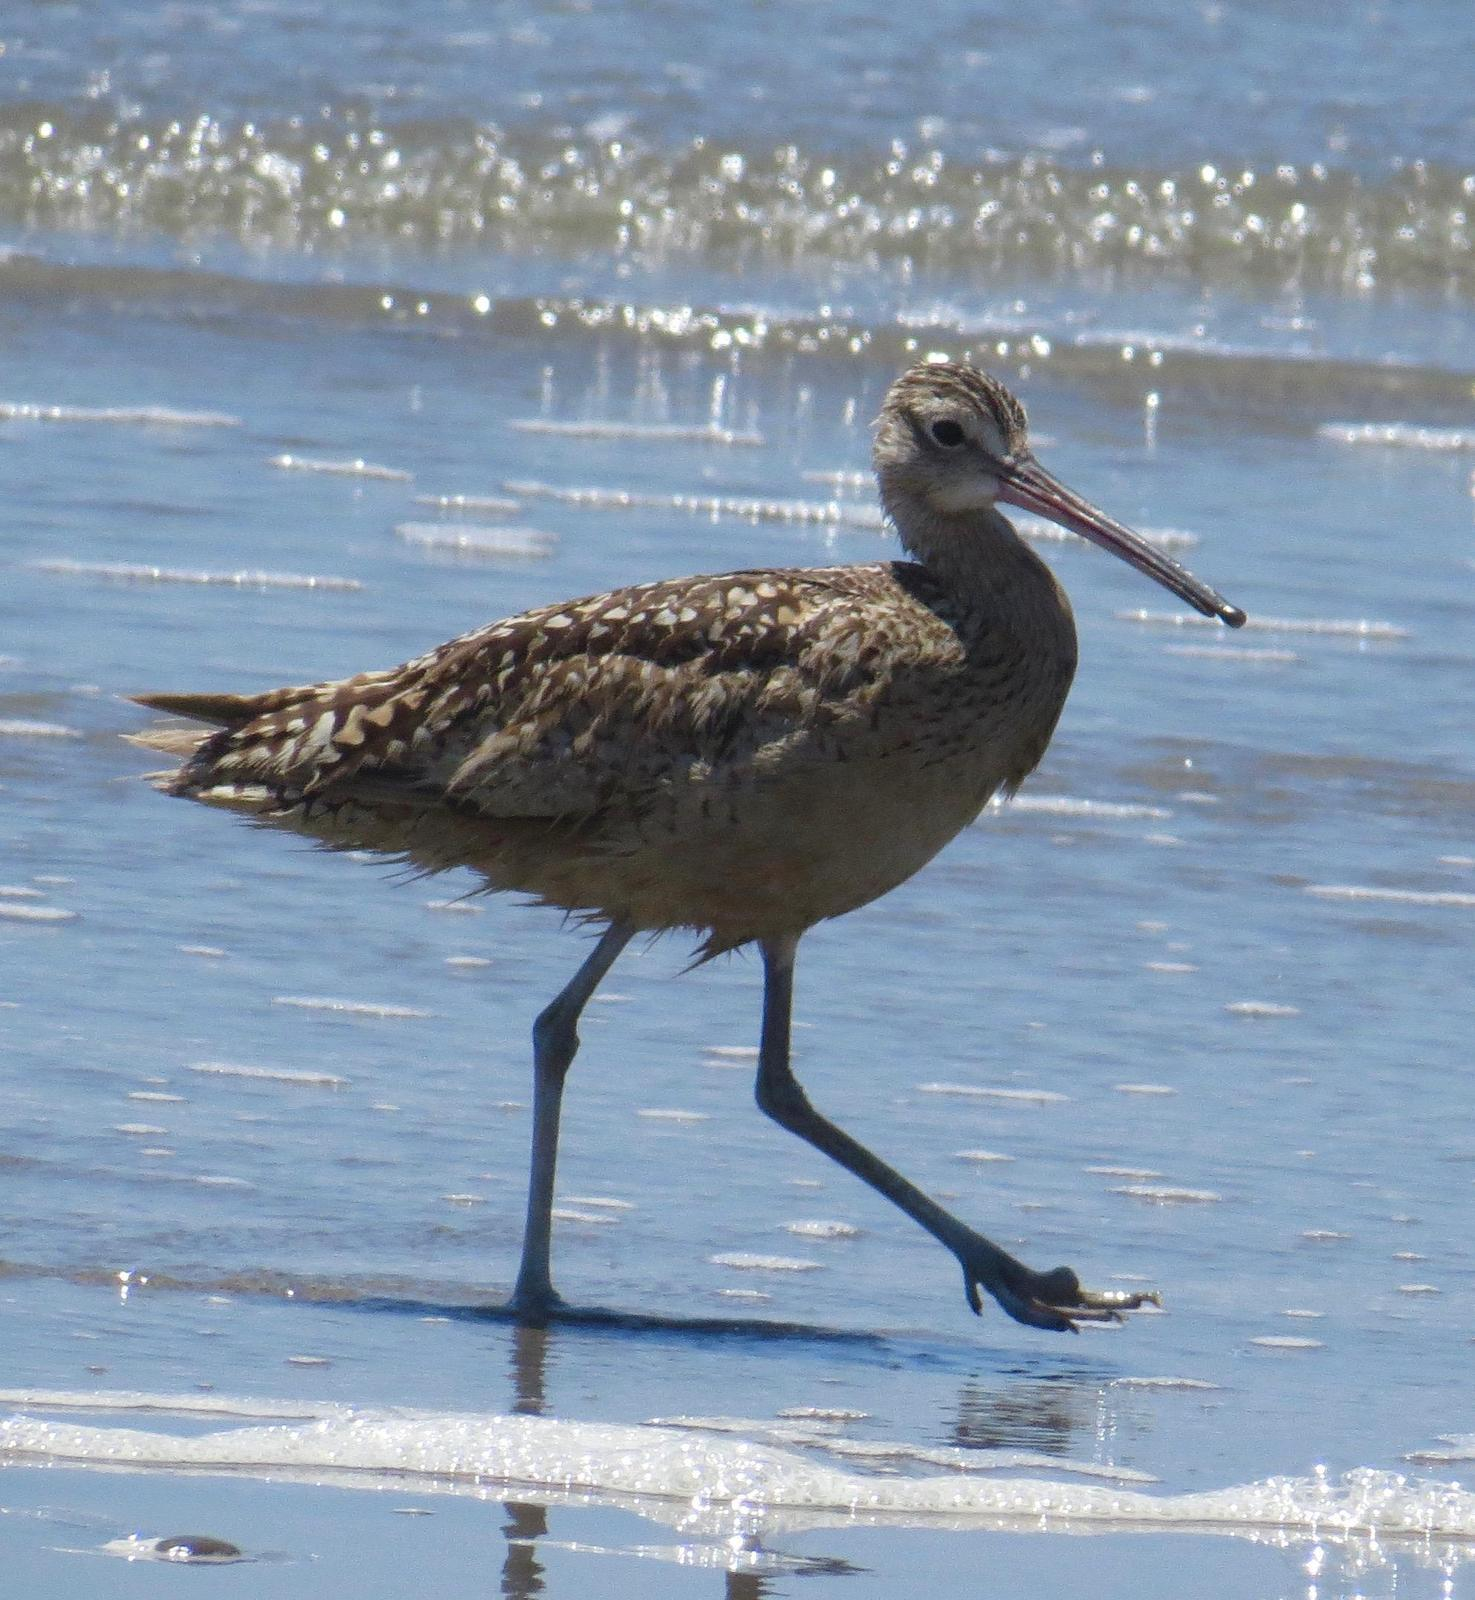 Long-billed Curlew Photo by Don Glasco